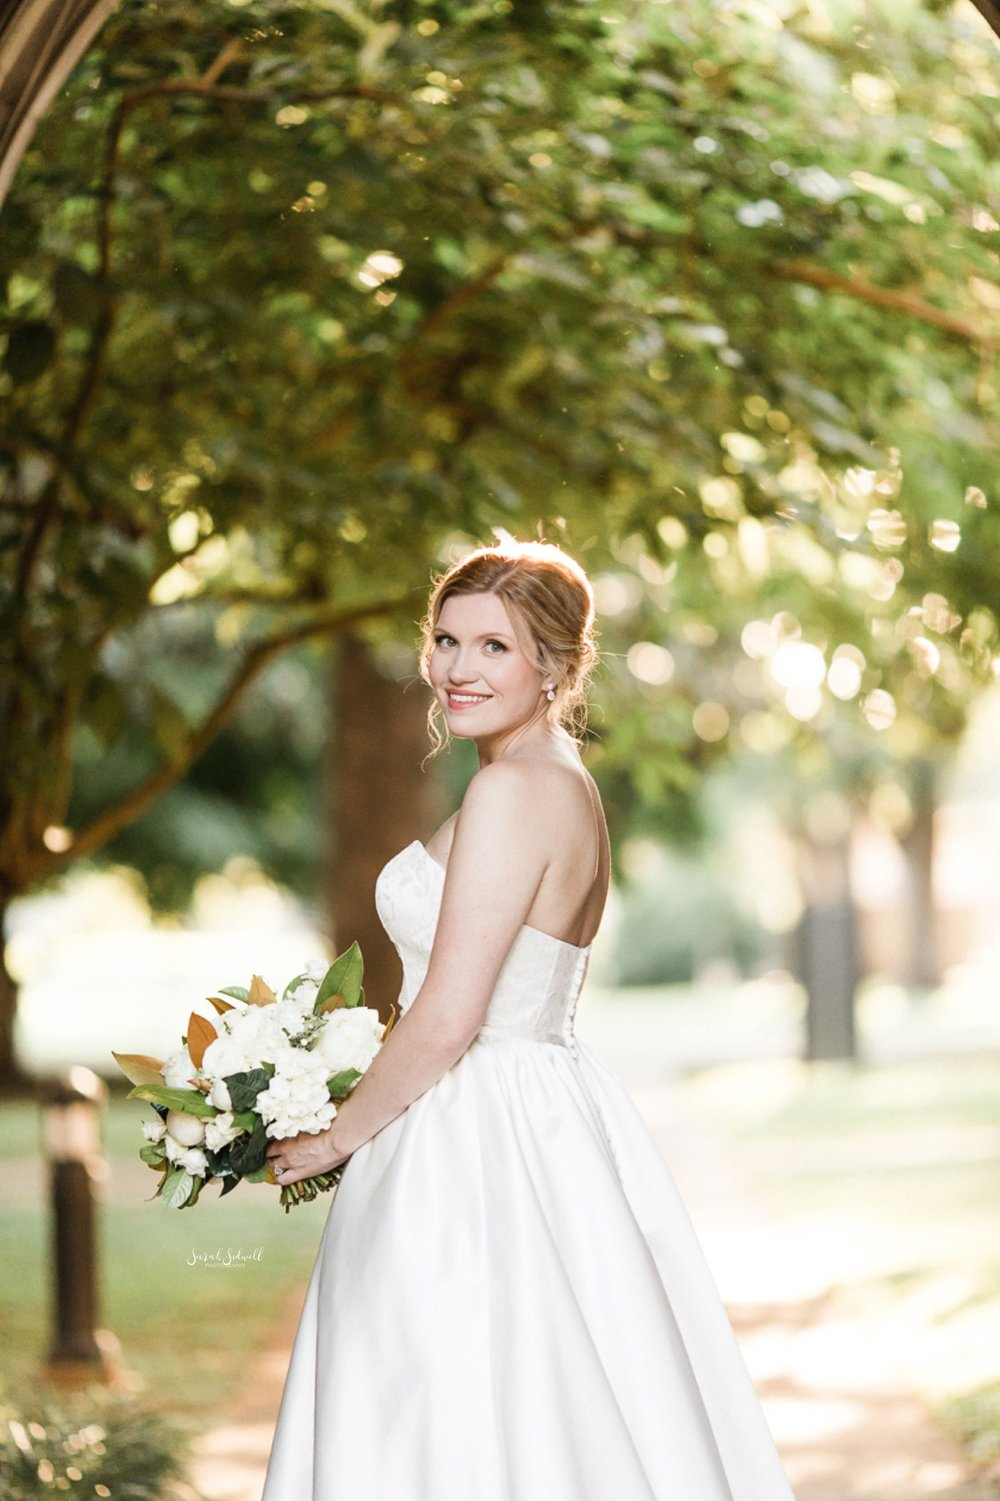 Bridal Photographs In Nashville | Sarah Sidwell Photography